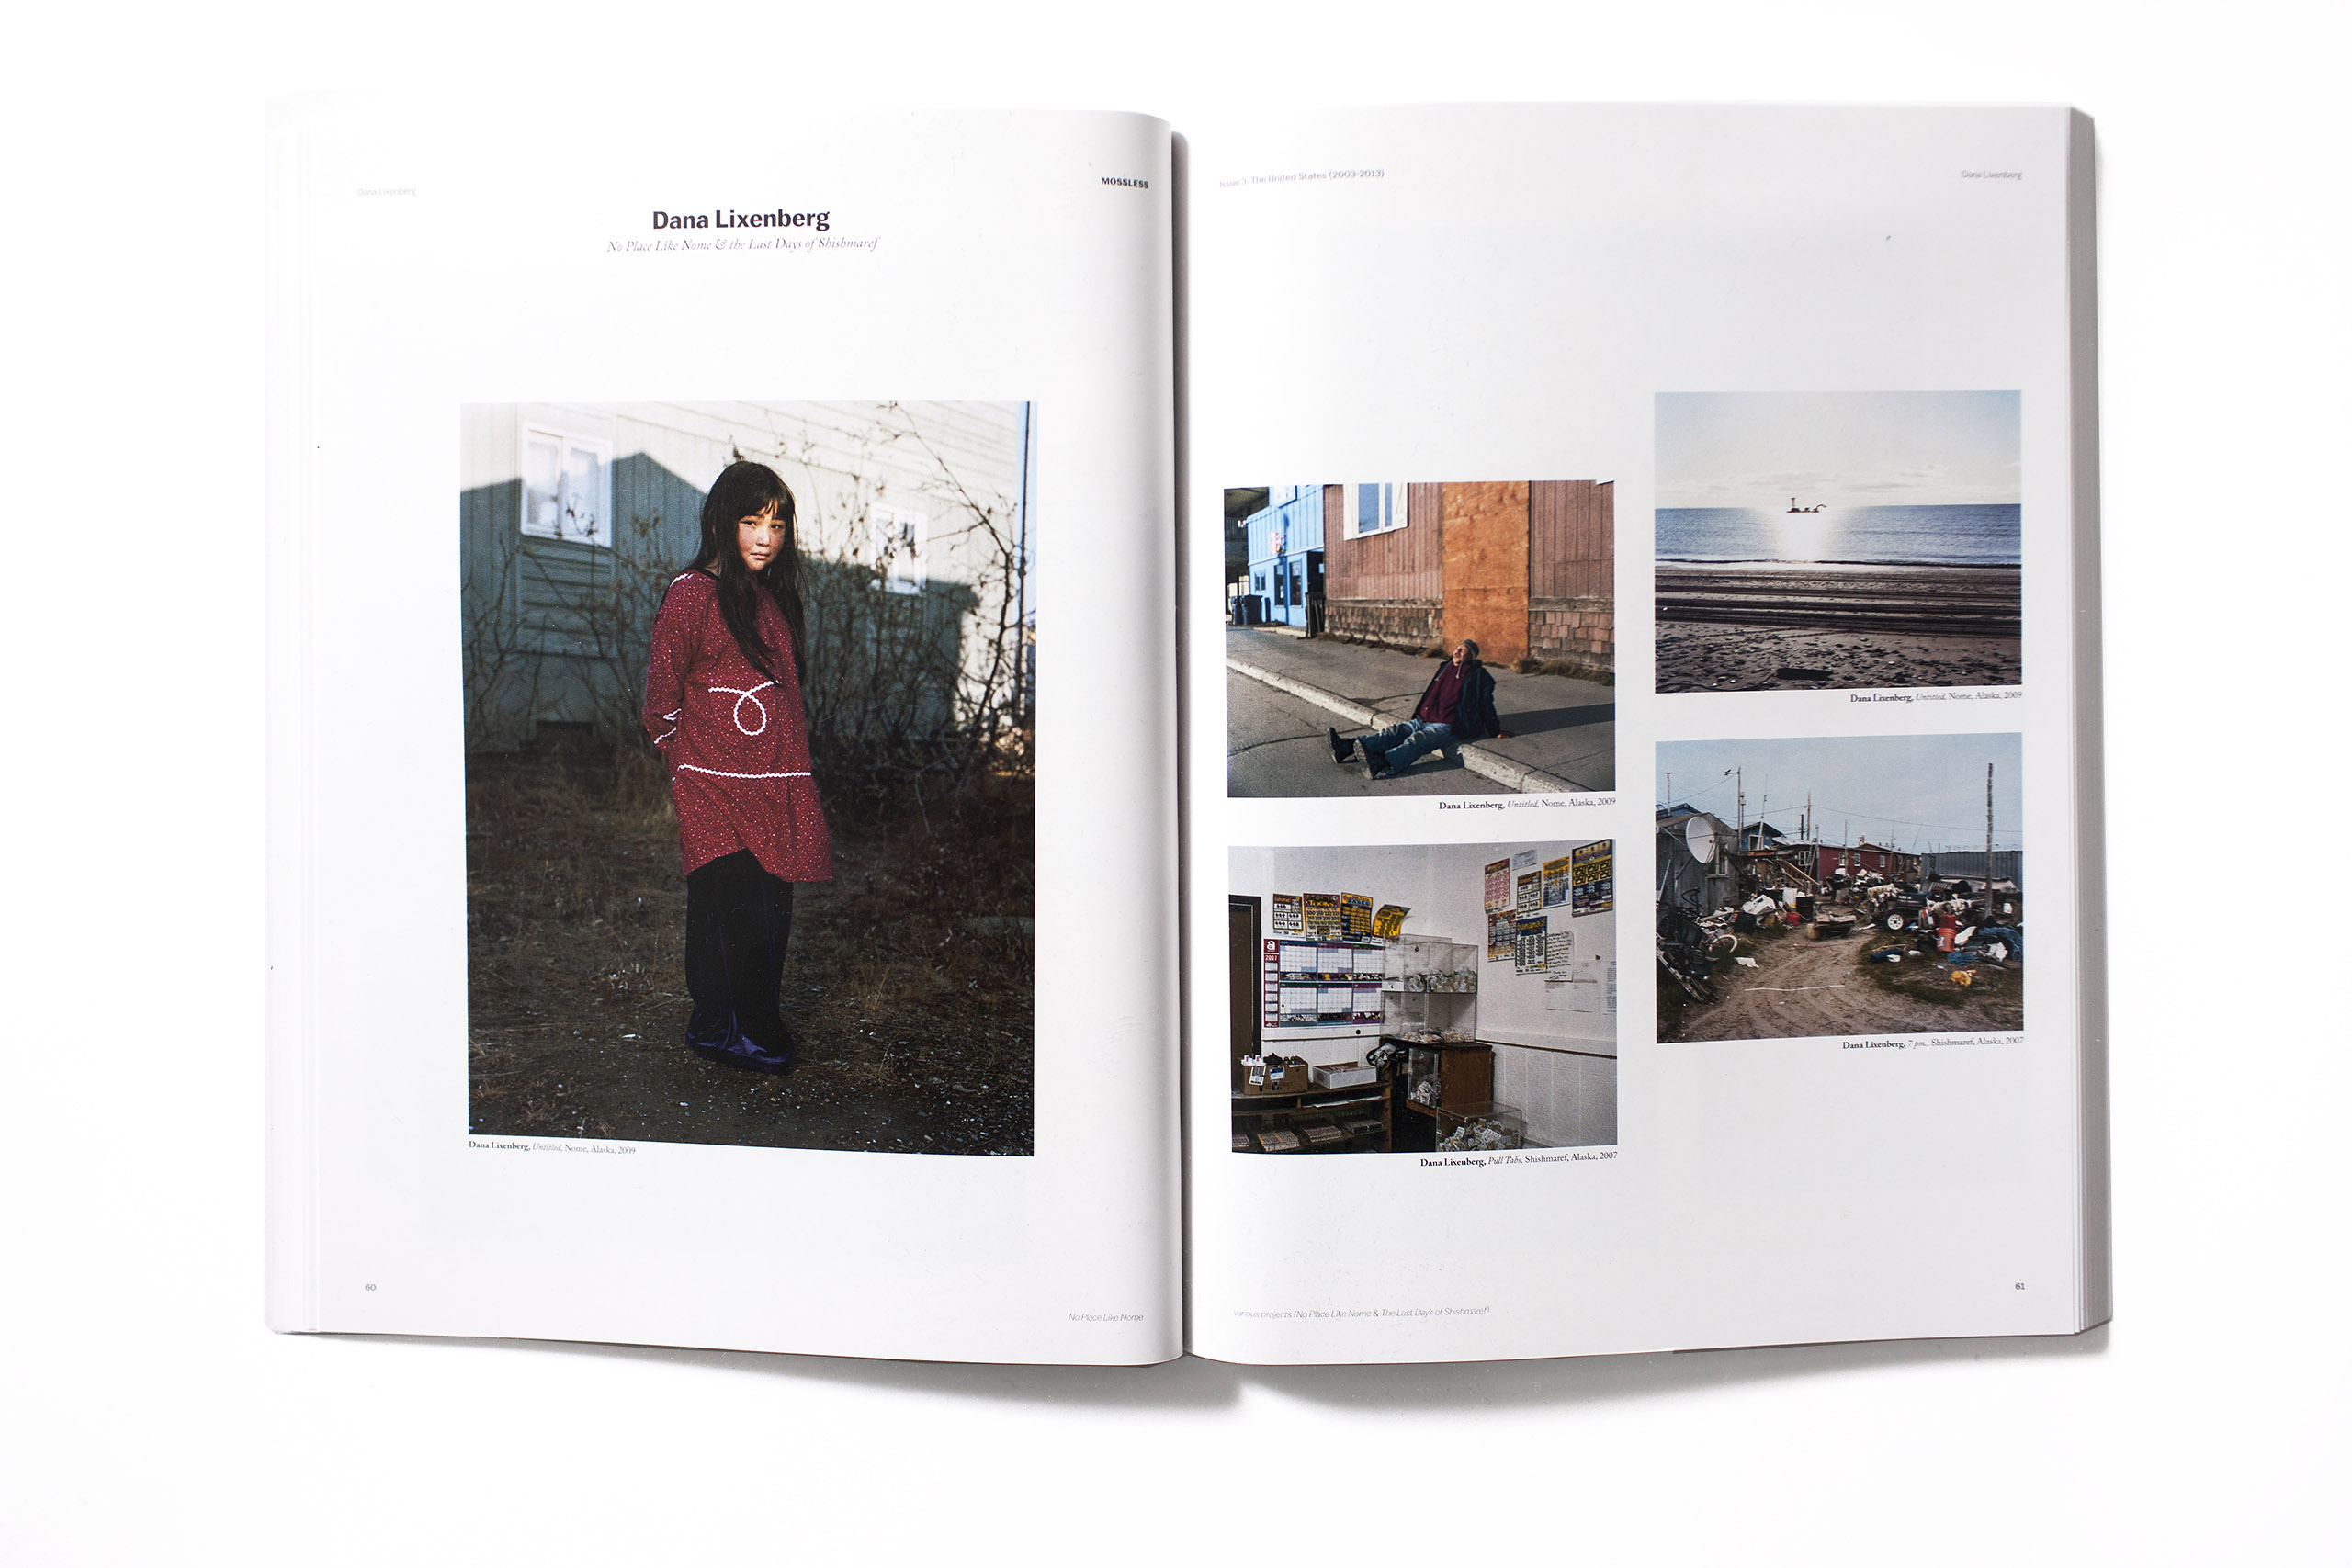 Although technically a periodical, Issue Three of Mossless magazine is 216 pages, includes the work of over 100 photographers, and took the better part of two years to research and produce. As a collection of American documentary photographs published to the Internet during the last ten years, it positions well established photographers alongside lesser known artists working in all parts of the country. Visual evidence of the economic crash reveals itself across spreads featuring both poetically curated collections of cell phone-sized photos by different artists and small portfolios of single photographers (Kathya Landeros, Ilona Szwarc, Paul D'Amato, and Daniel Shea, among many others). 'You can see the same groans in each photo,  Romke Hoogwaerts, co publisher of Mossless told me.  Everybody is kind of tired.  Take from it what you will—the book is lush and uplifting, and it confirms that social documentary photography is alive and well.                                                                -Matthew Leifheit, Photo Editor at VICE